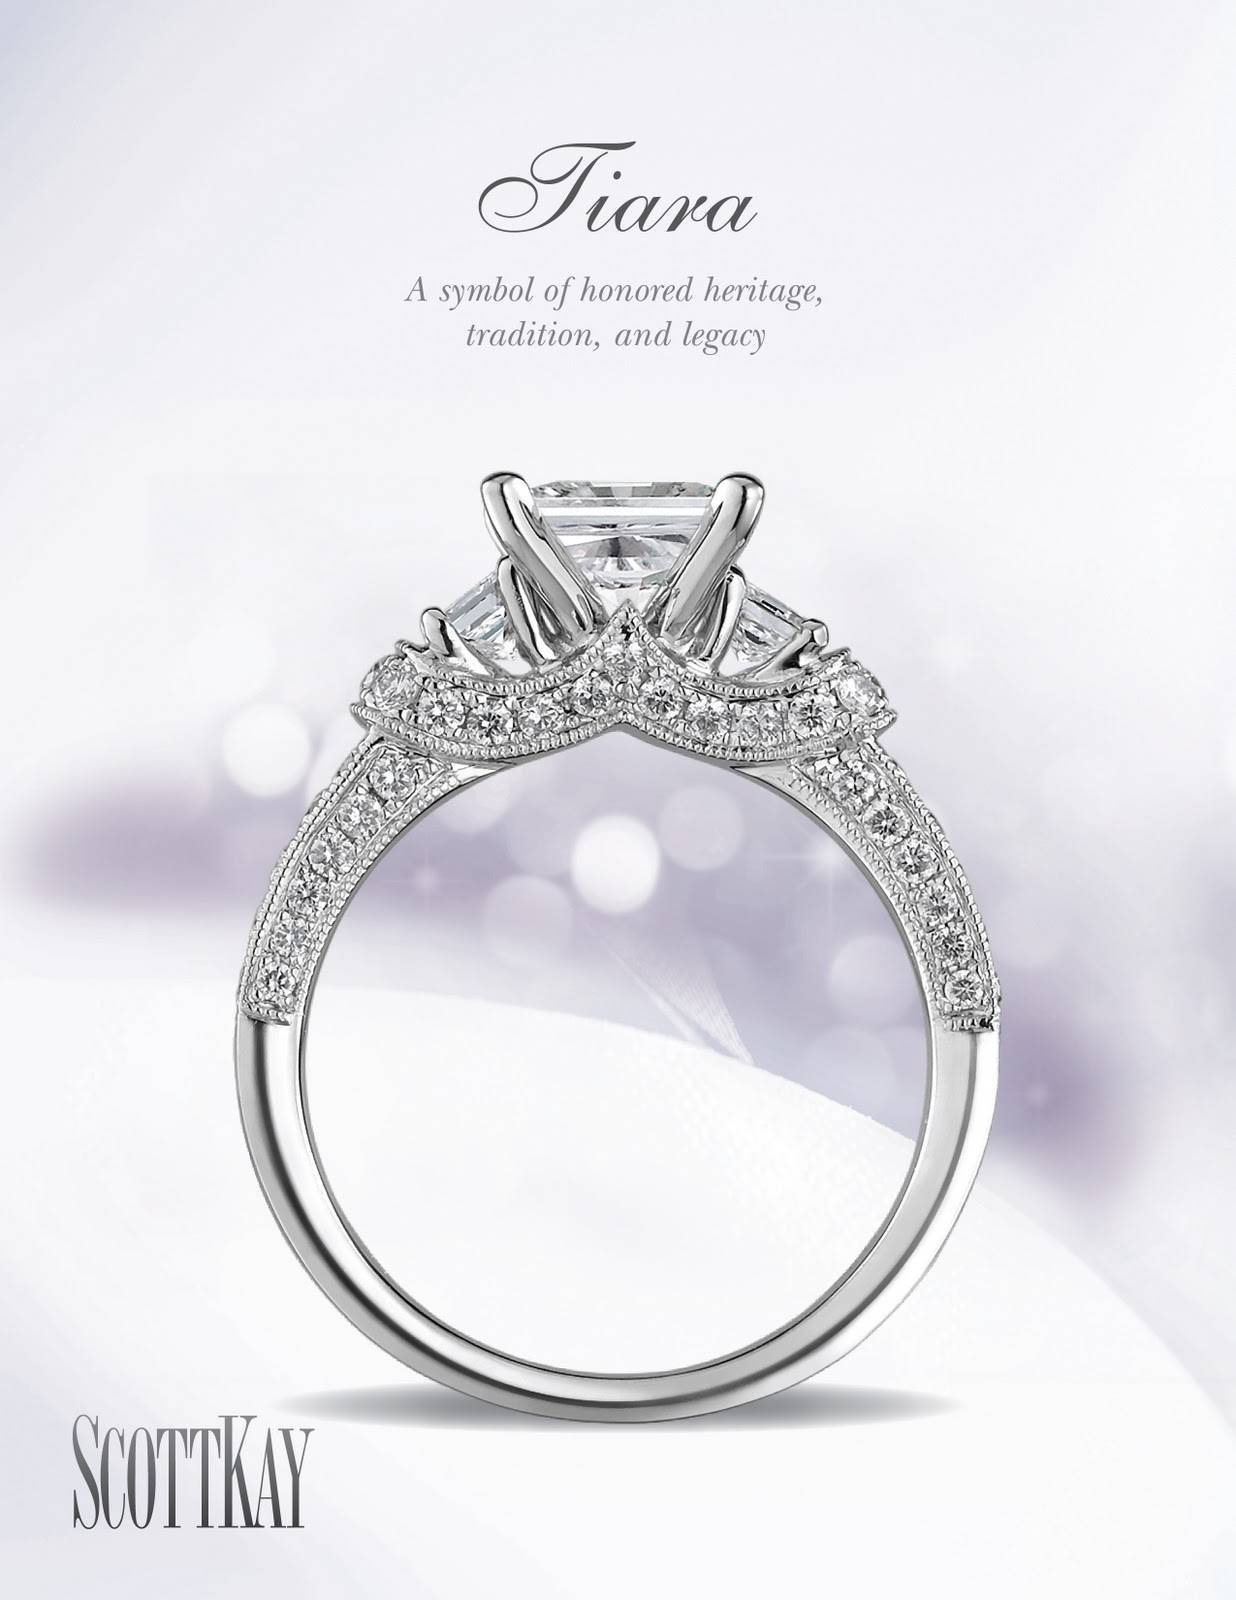 Kathleen's Wedding Planner: The Wedding Ring I Want With Regard To Scott Kay Tiara Wedding Bands (View 4 of 15)